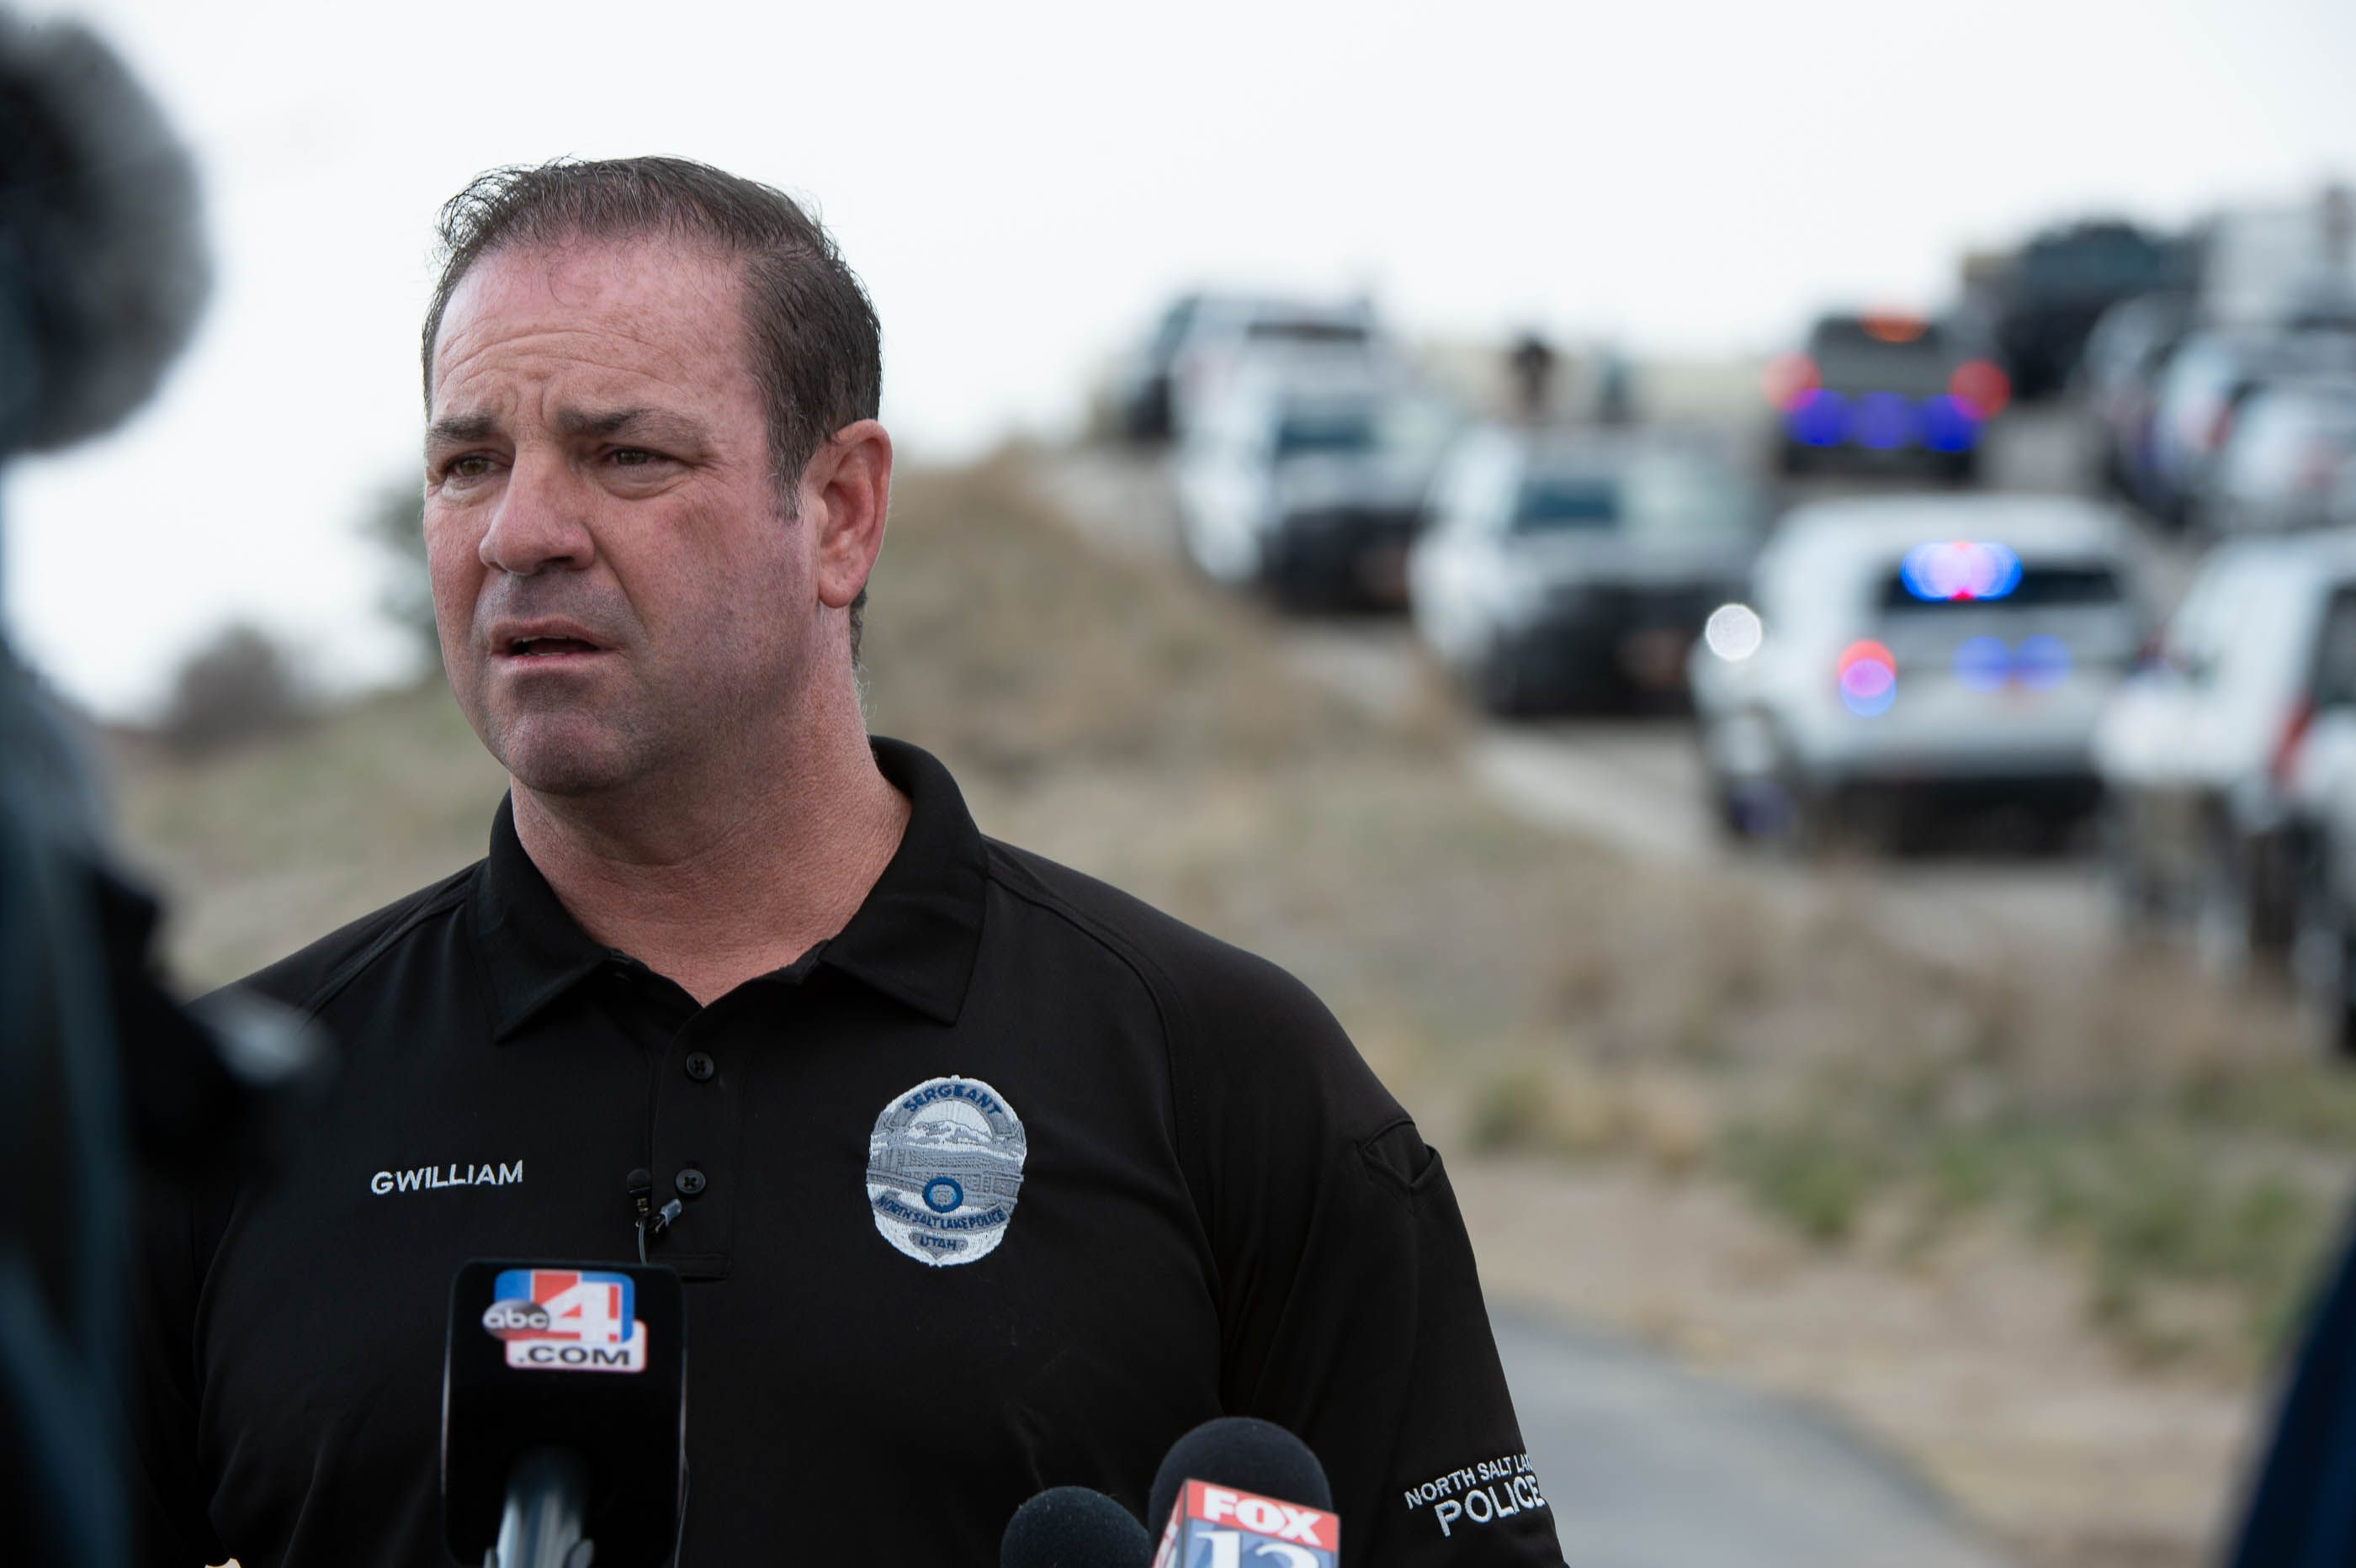 (Francisco Kjolseth  | The Salt Lake Tribune) Sergeant Mitch Gwilliams with North Salt Lake Police gives an update to a call involving a man driving erratically and claiming to have a gun and a bomb as an initial police chase comes to and end on Center Street over Legacy Highway on Wednesday, March 17, 2021, with no major injuries.